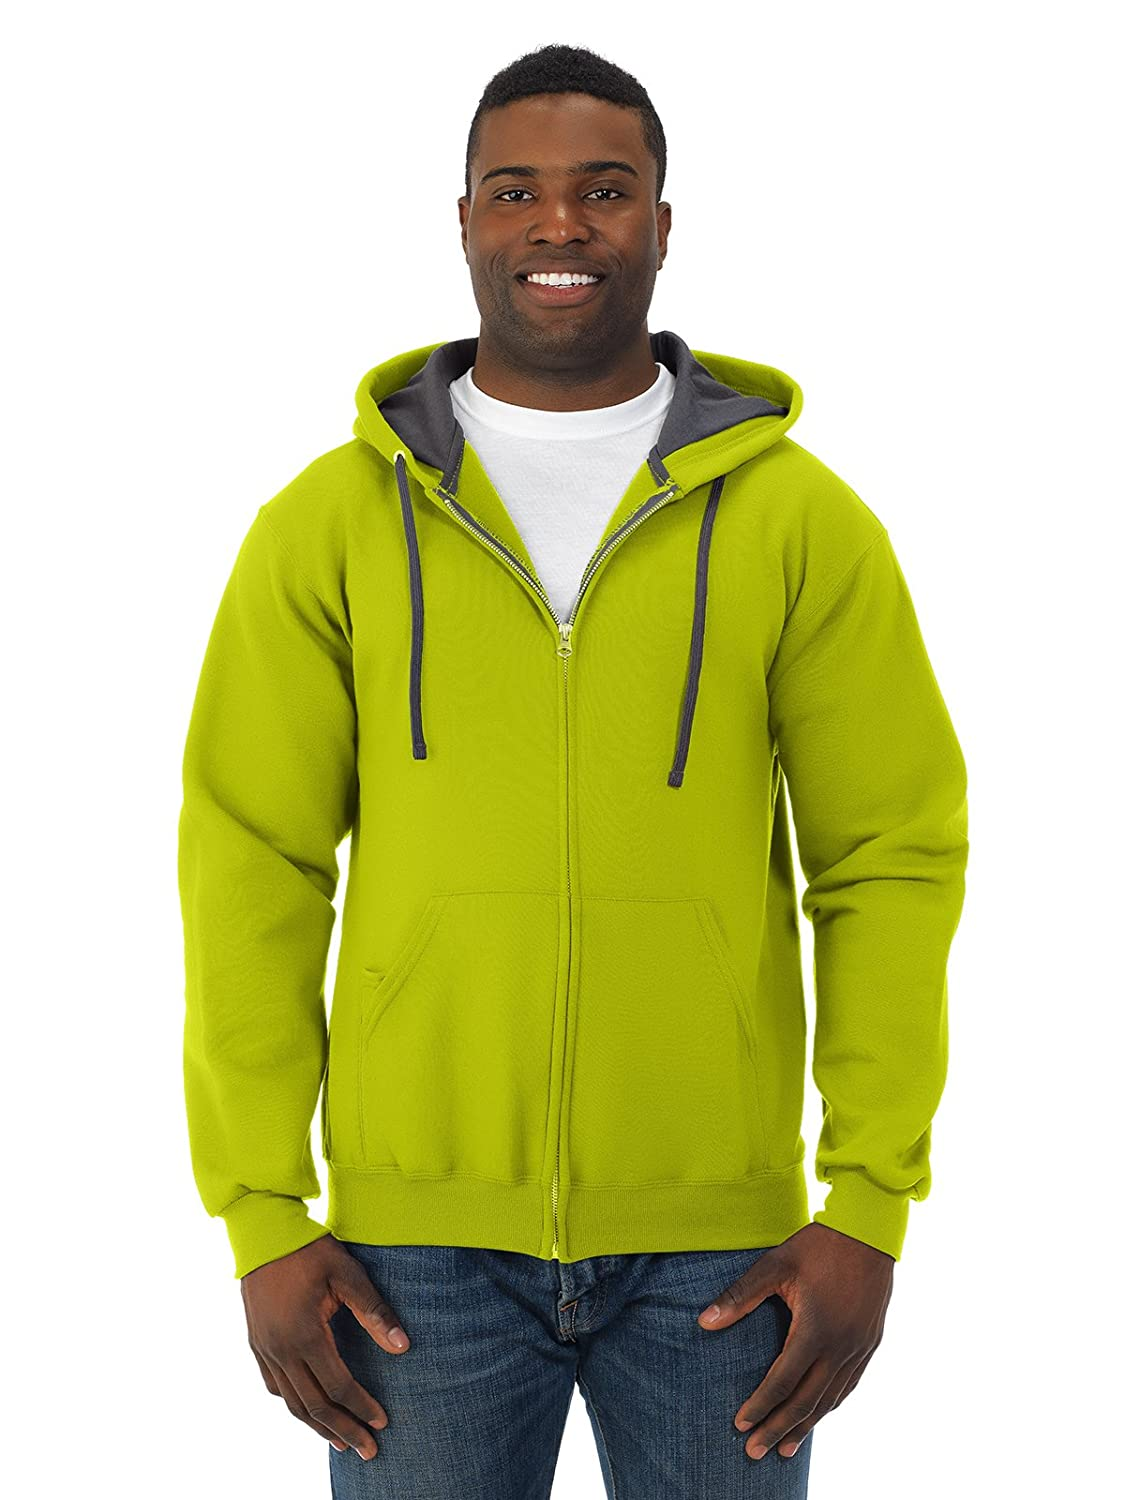 Fruit of the Loom SF73R Unisex Adult 7.2oz Sofspun Full-Zip Hoody Cotton Blend